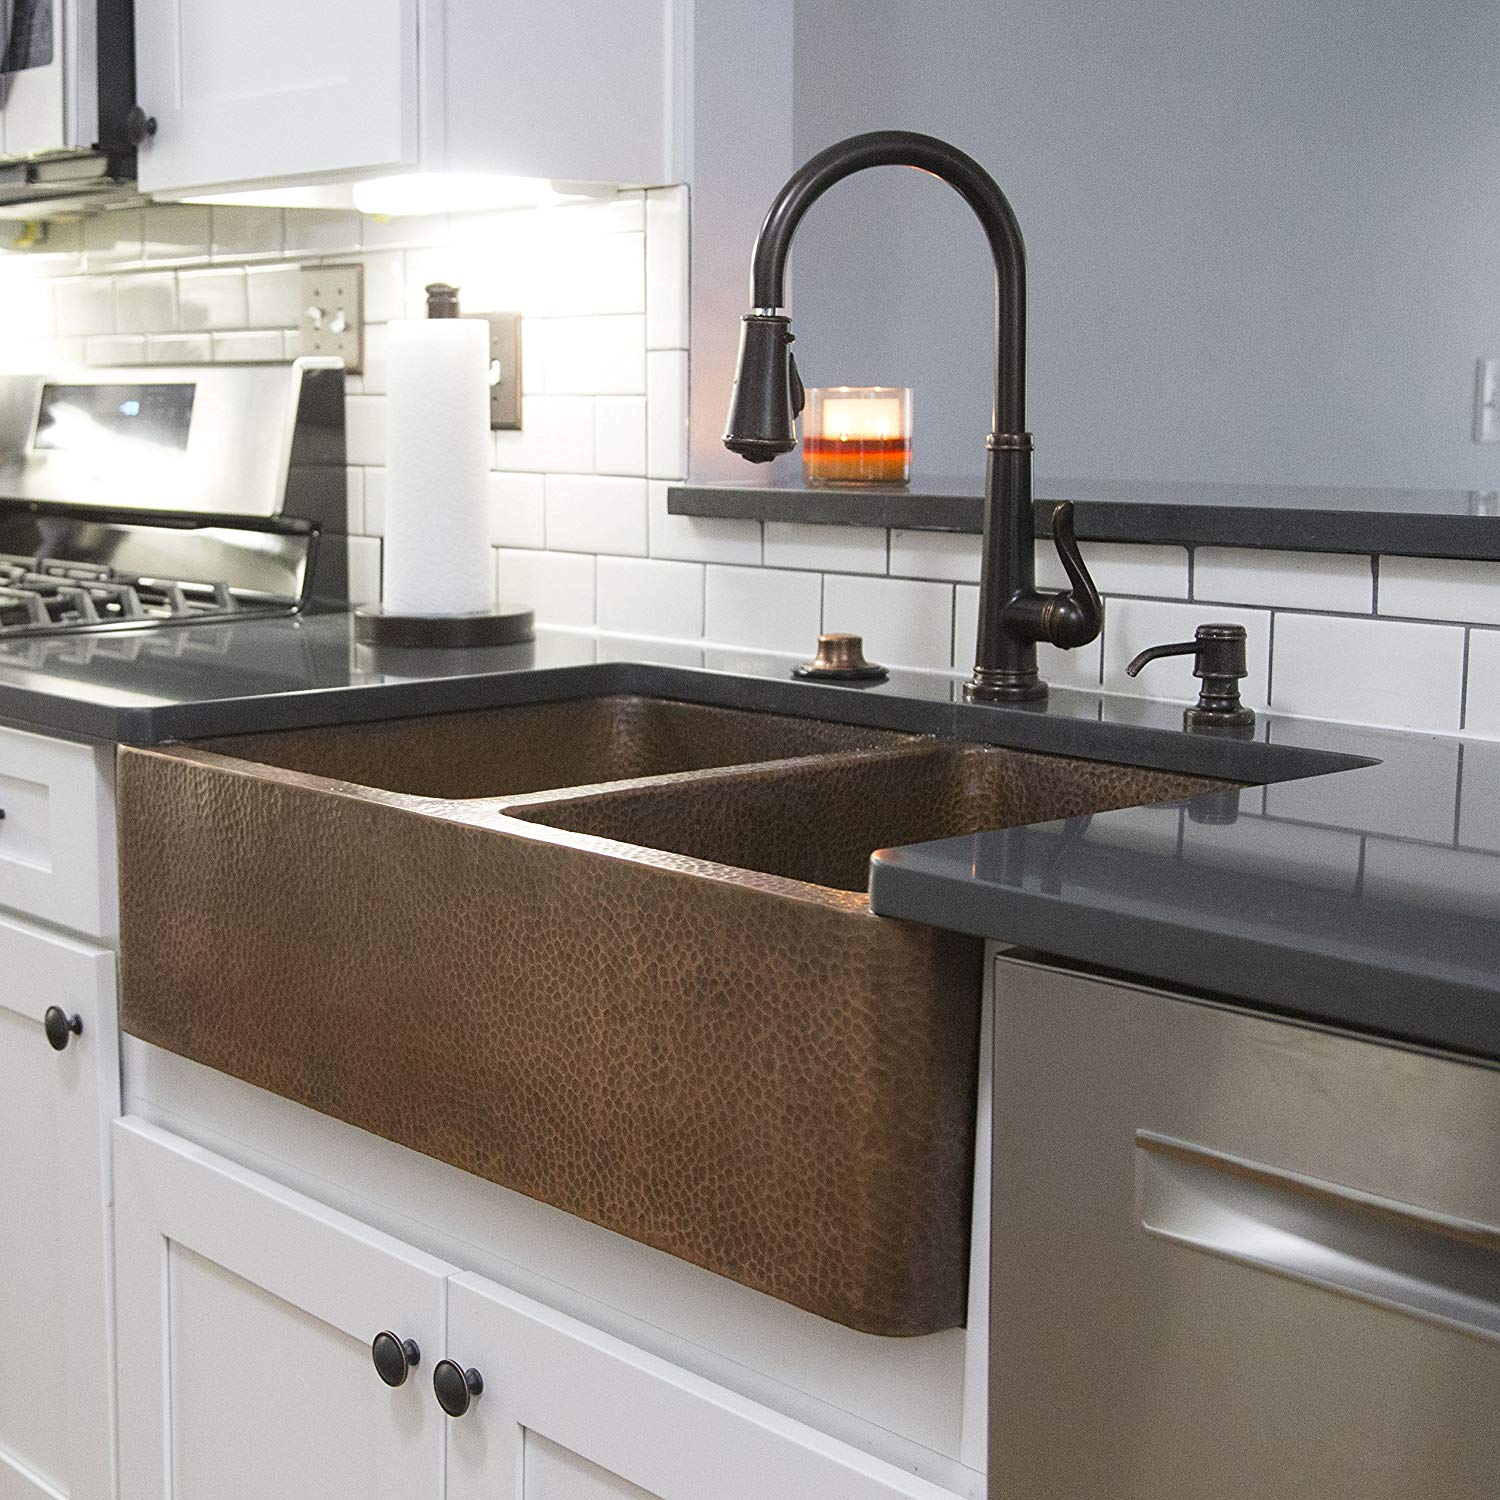 Sink Increase The Value Of Your Kitchen